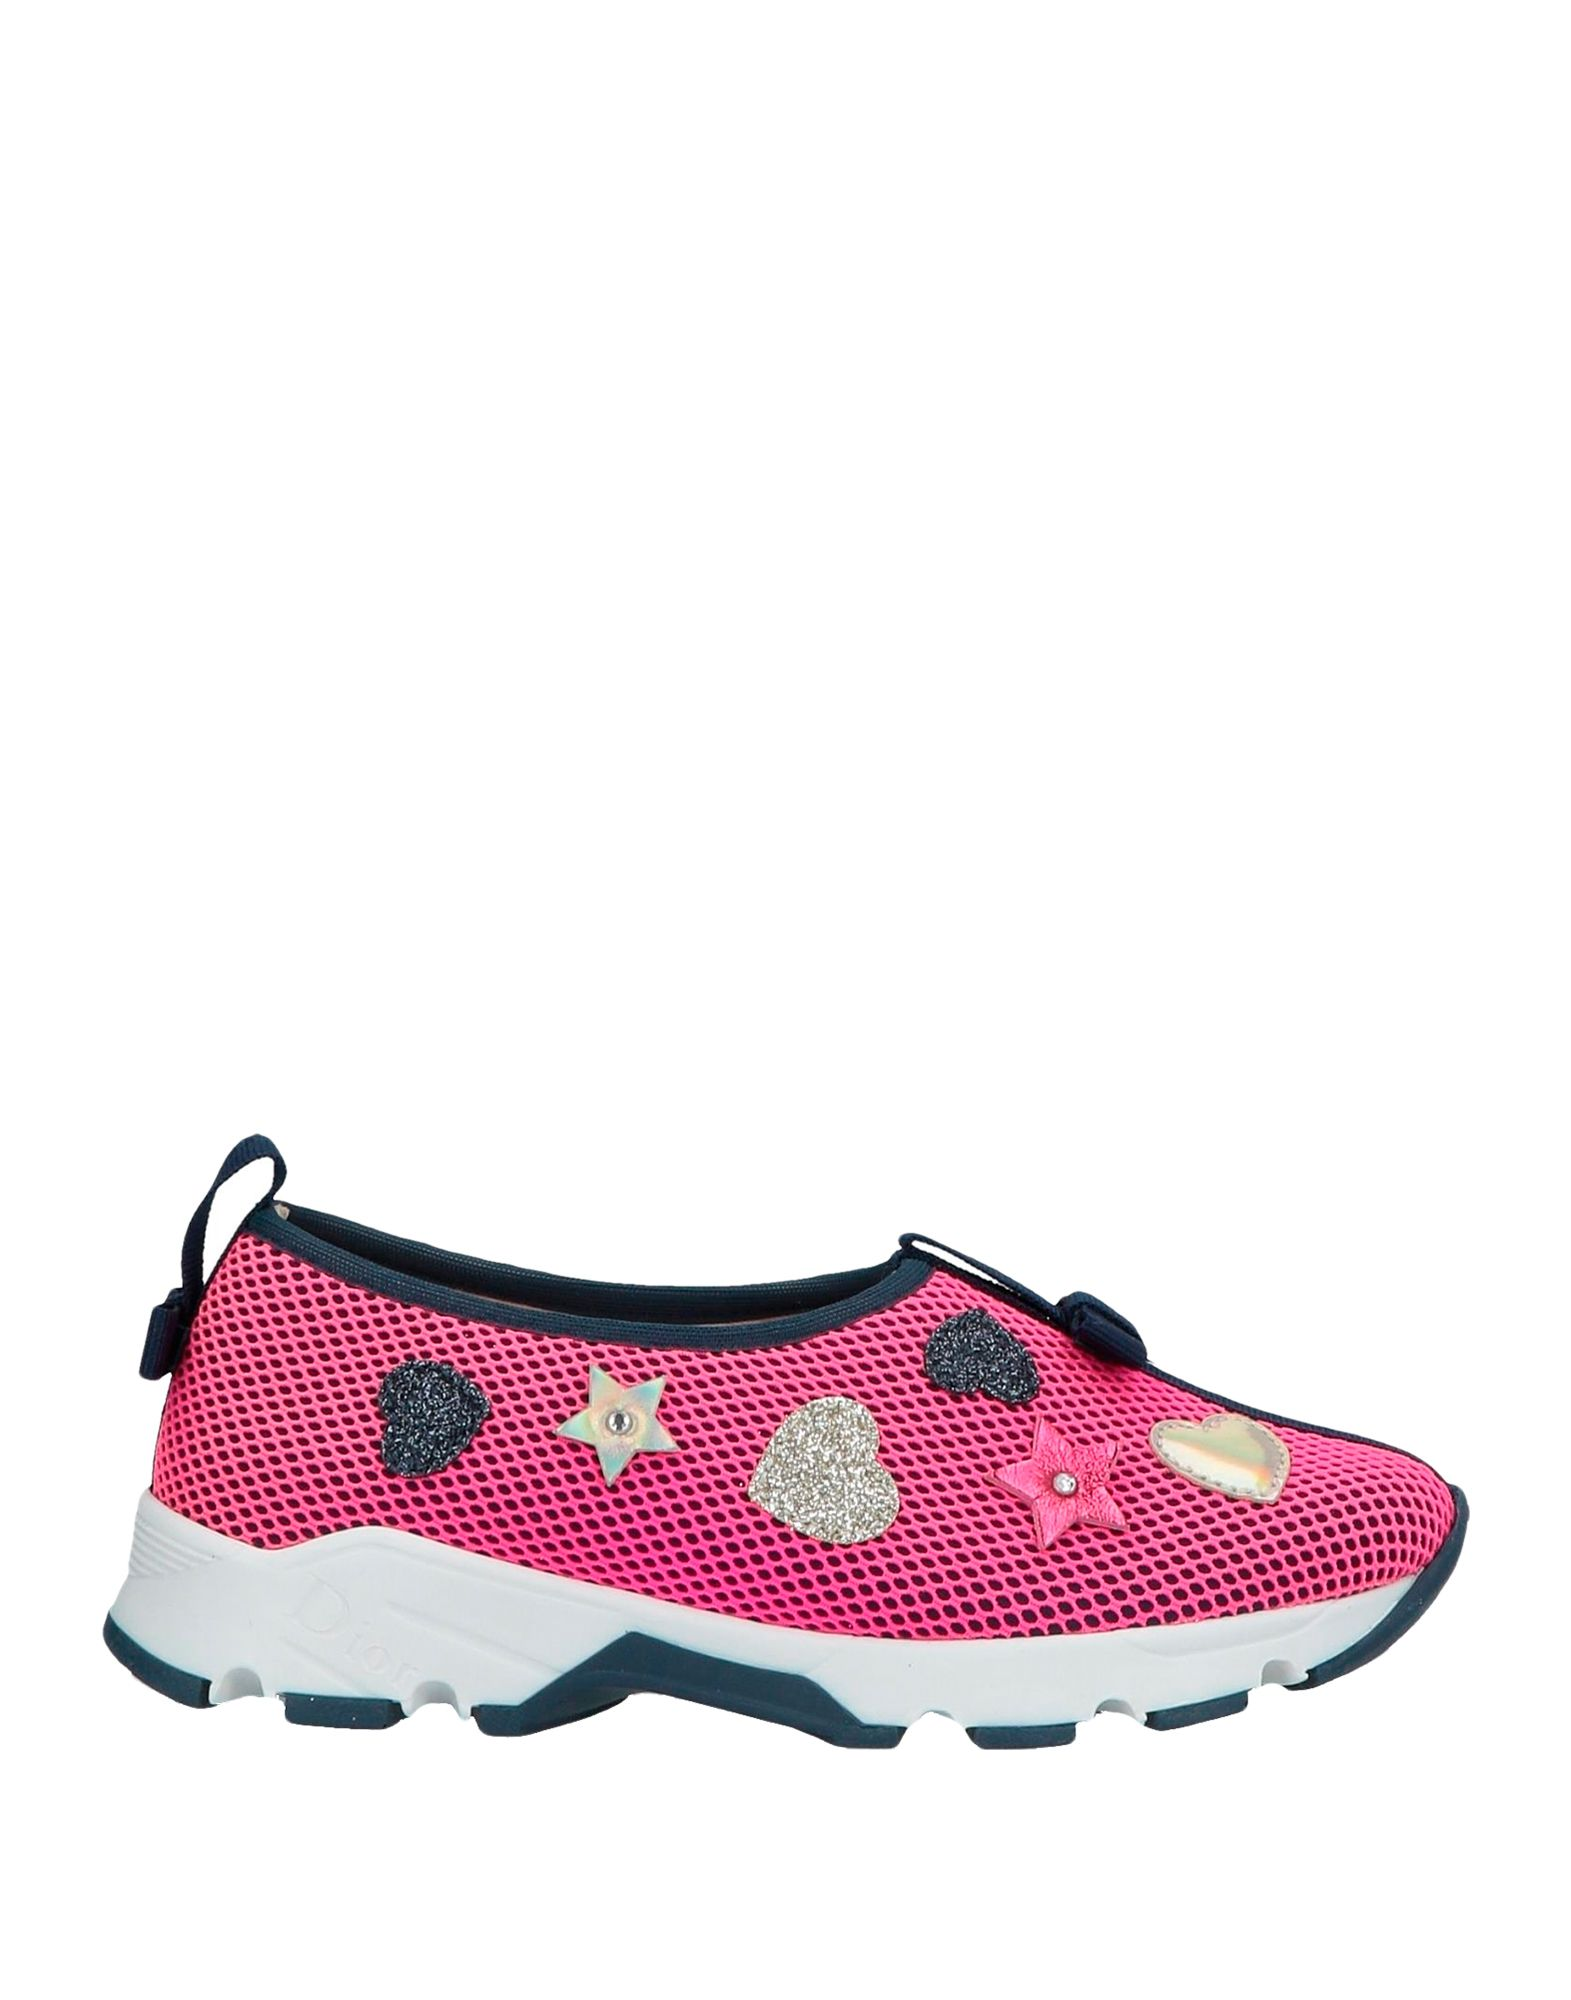 BABY DIOR | BABY DIOR Low-Tops & Sneakers 11683632 | Goxip